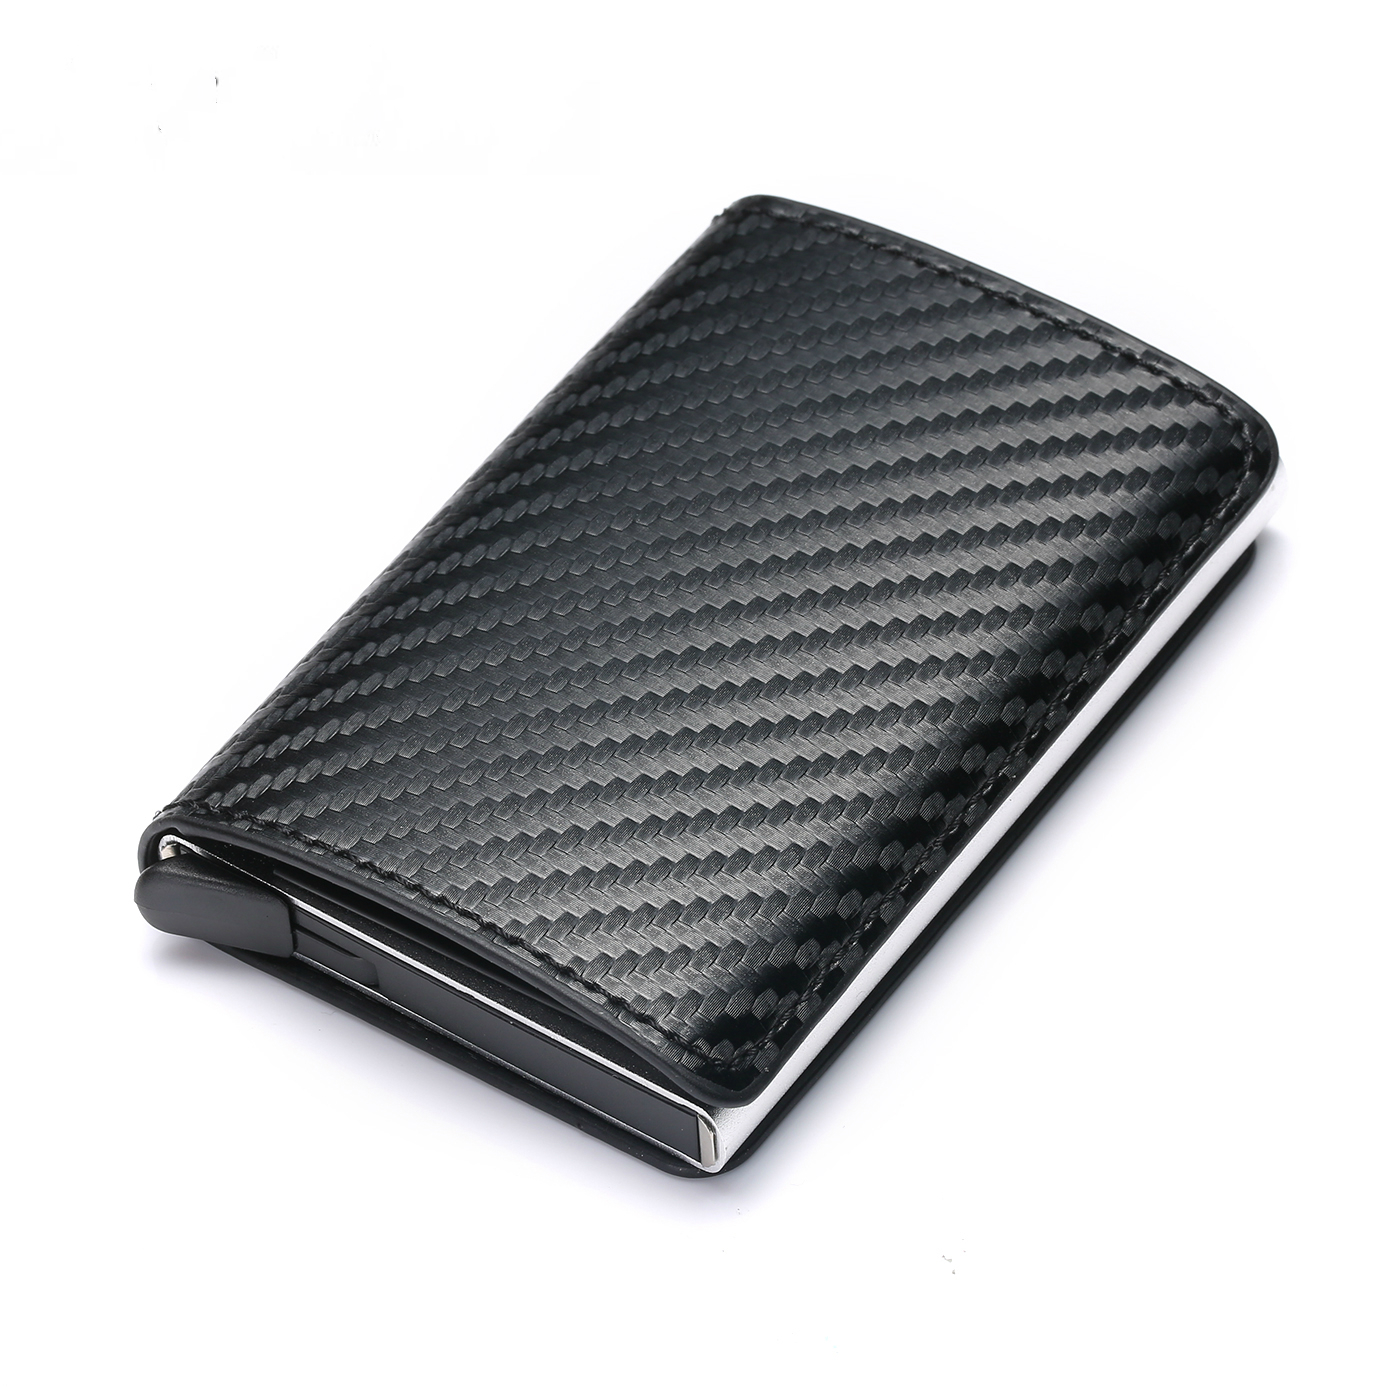 Bycobecy 2020 Fashion Credit Card Holder Carbon Fiber Card Holder Aluminum Slim Short Card Holder RFID Blocking Card Wallet